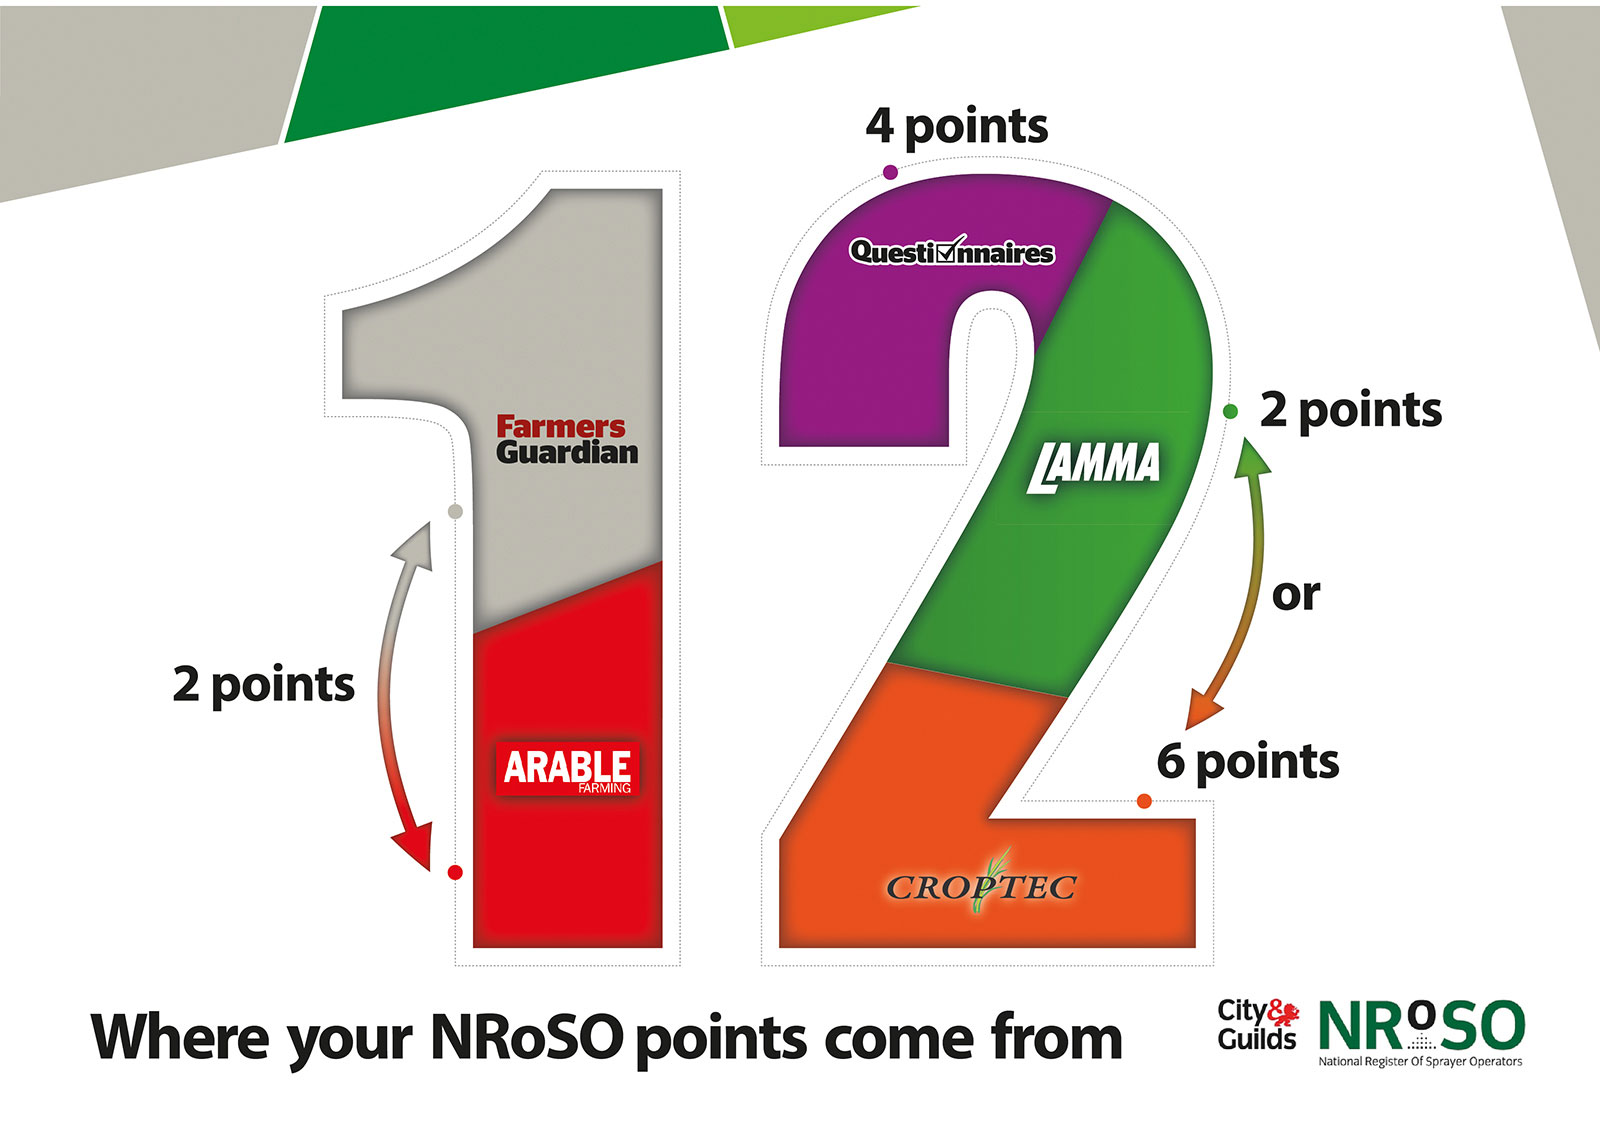 Your NRoSO points allocation